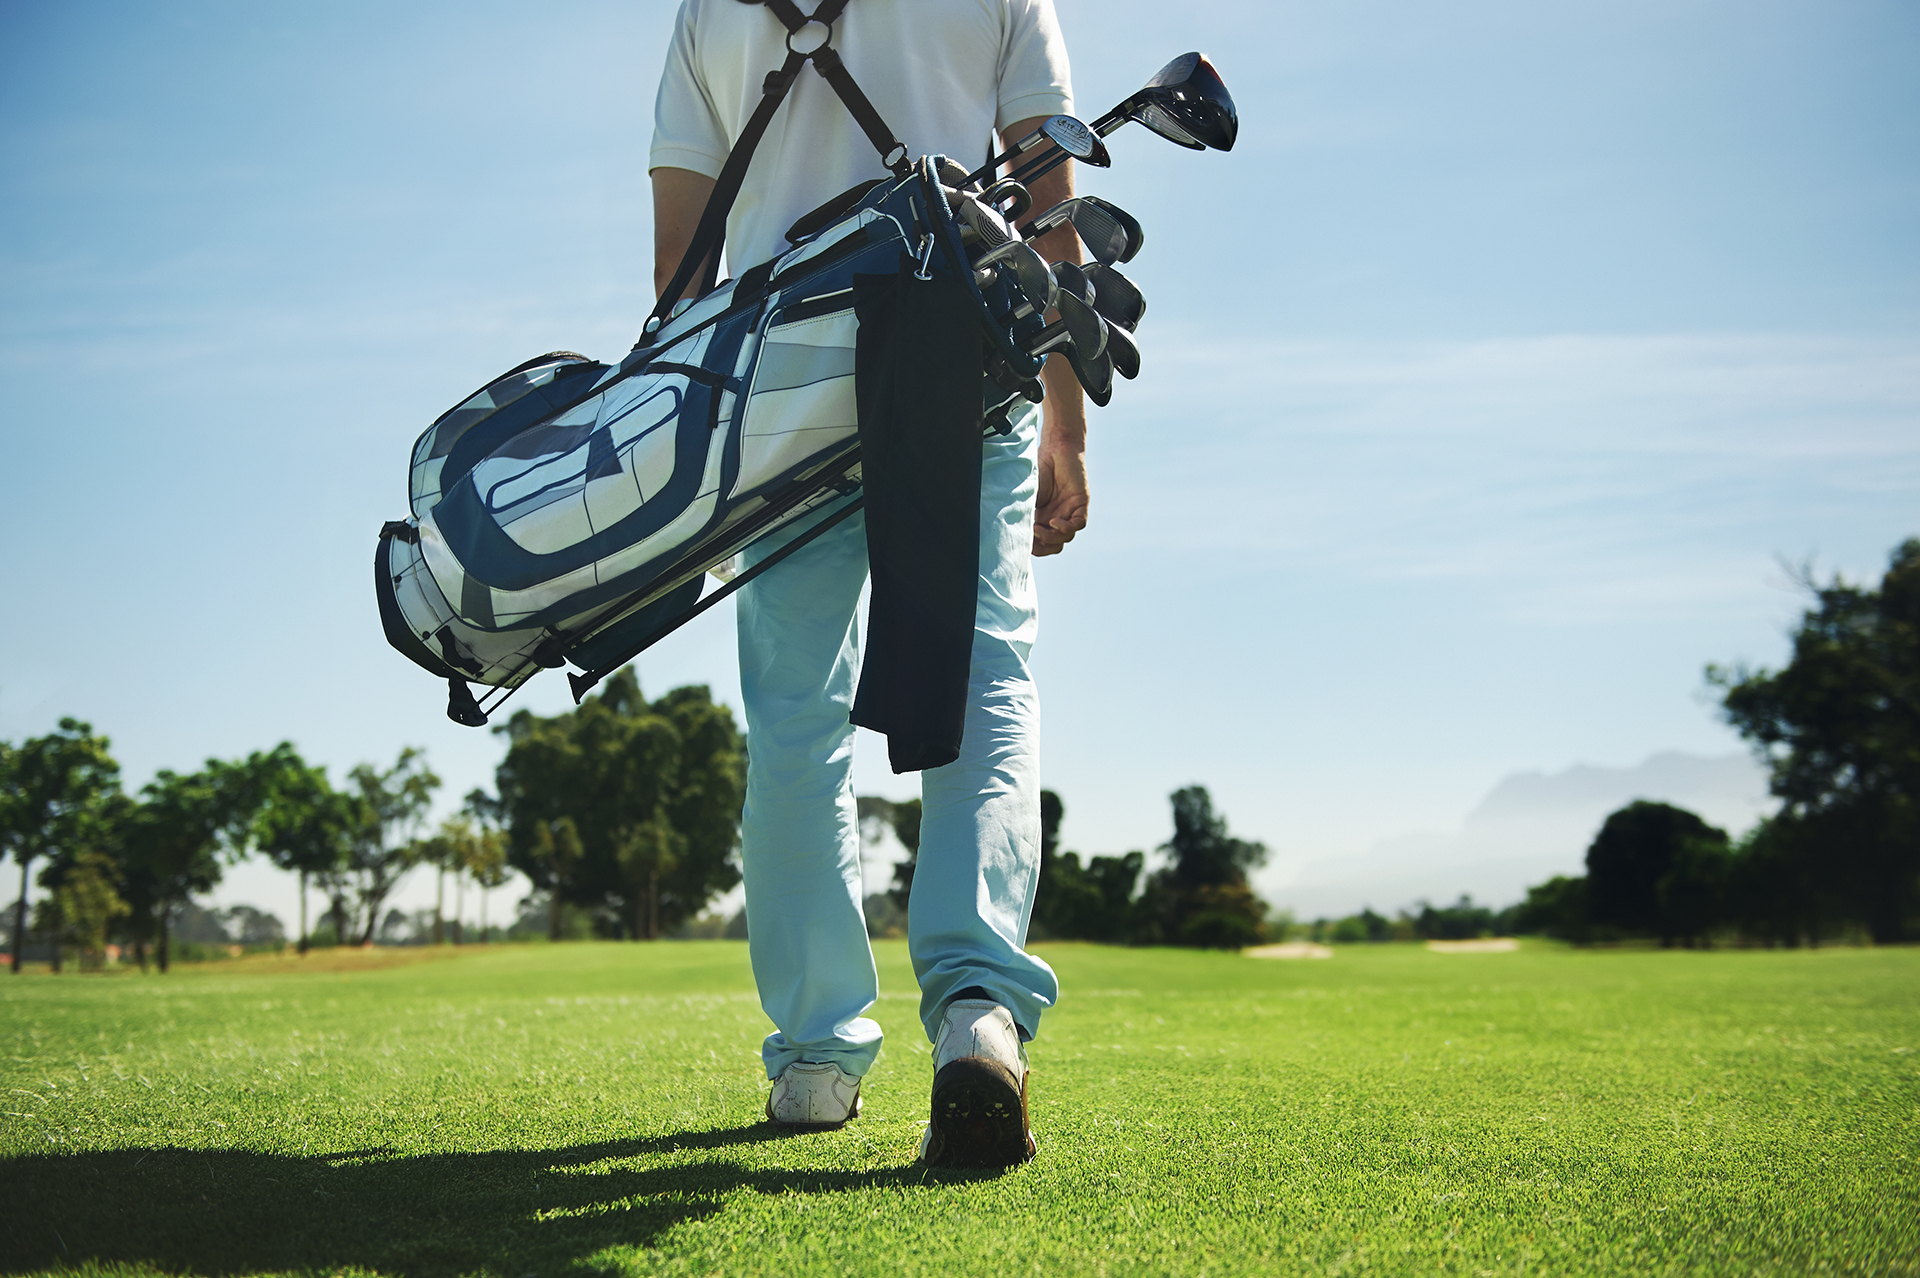 Man walking on golf course with clubs over his shoulder on a sunny day